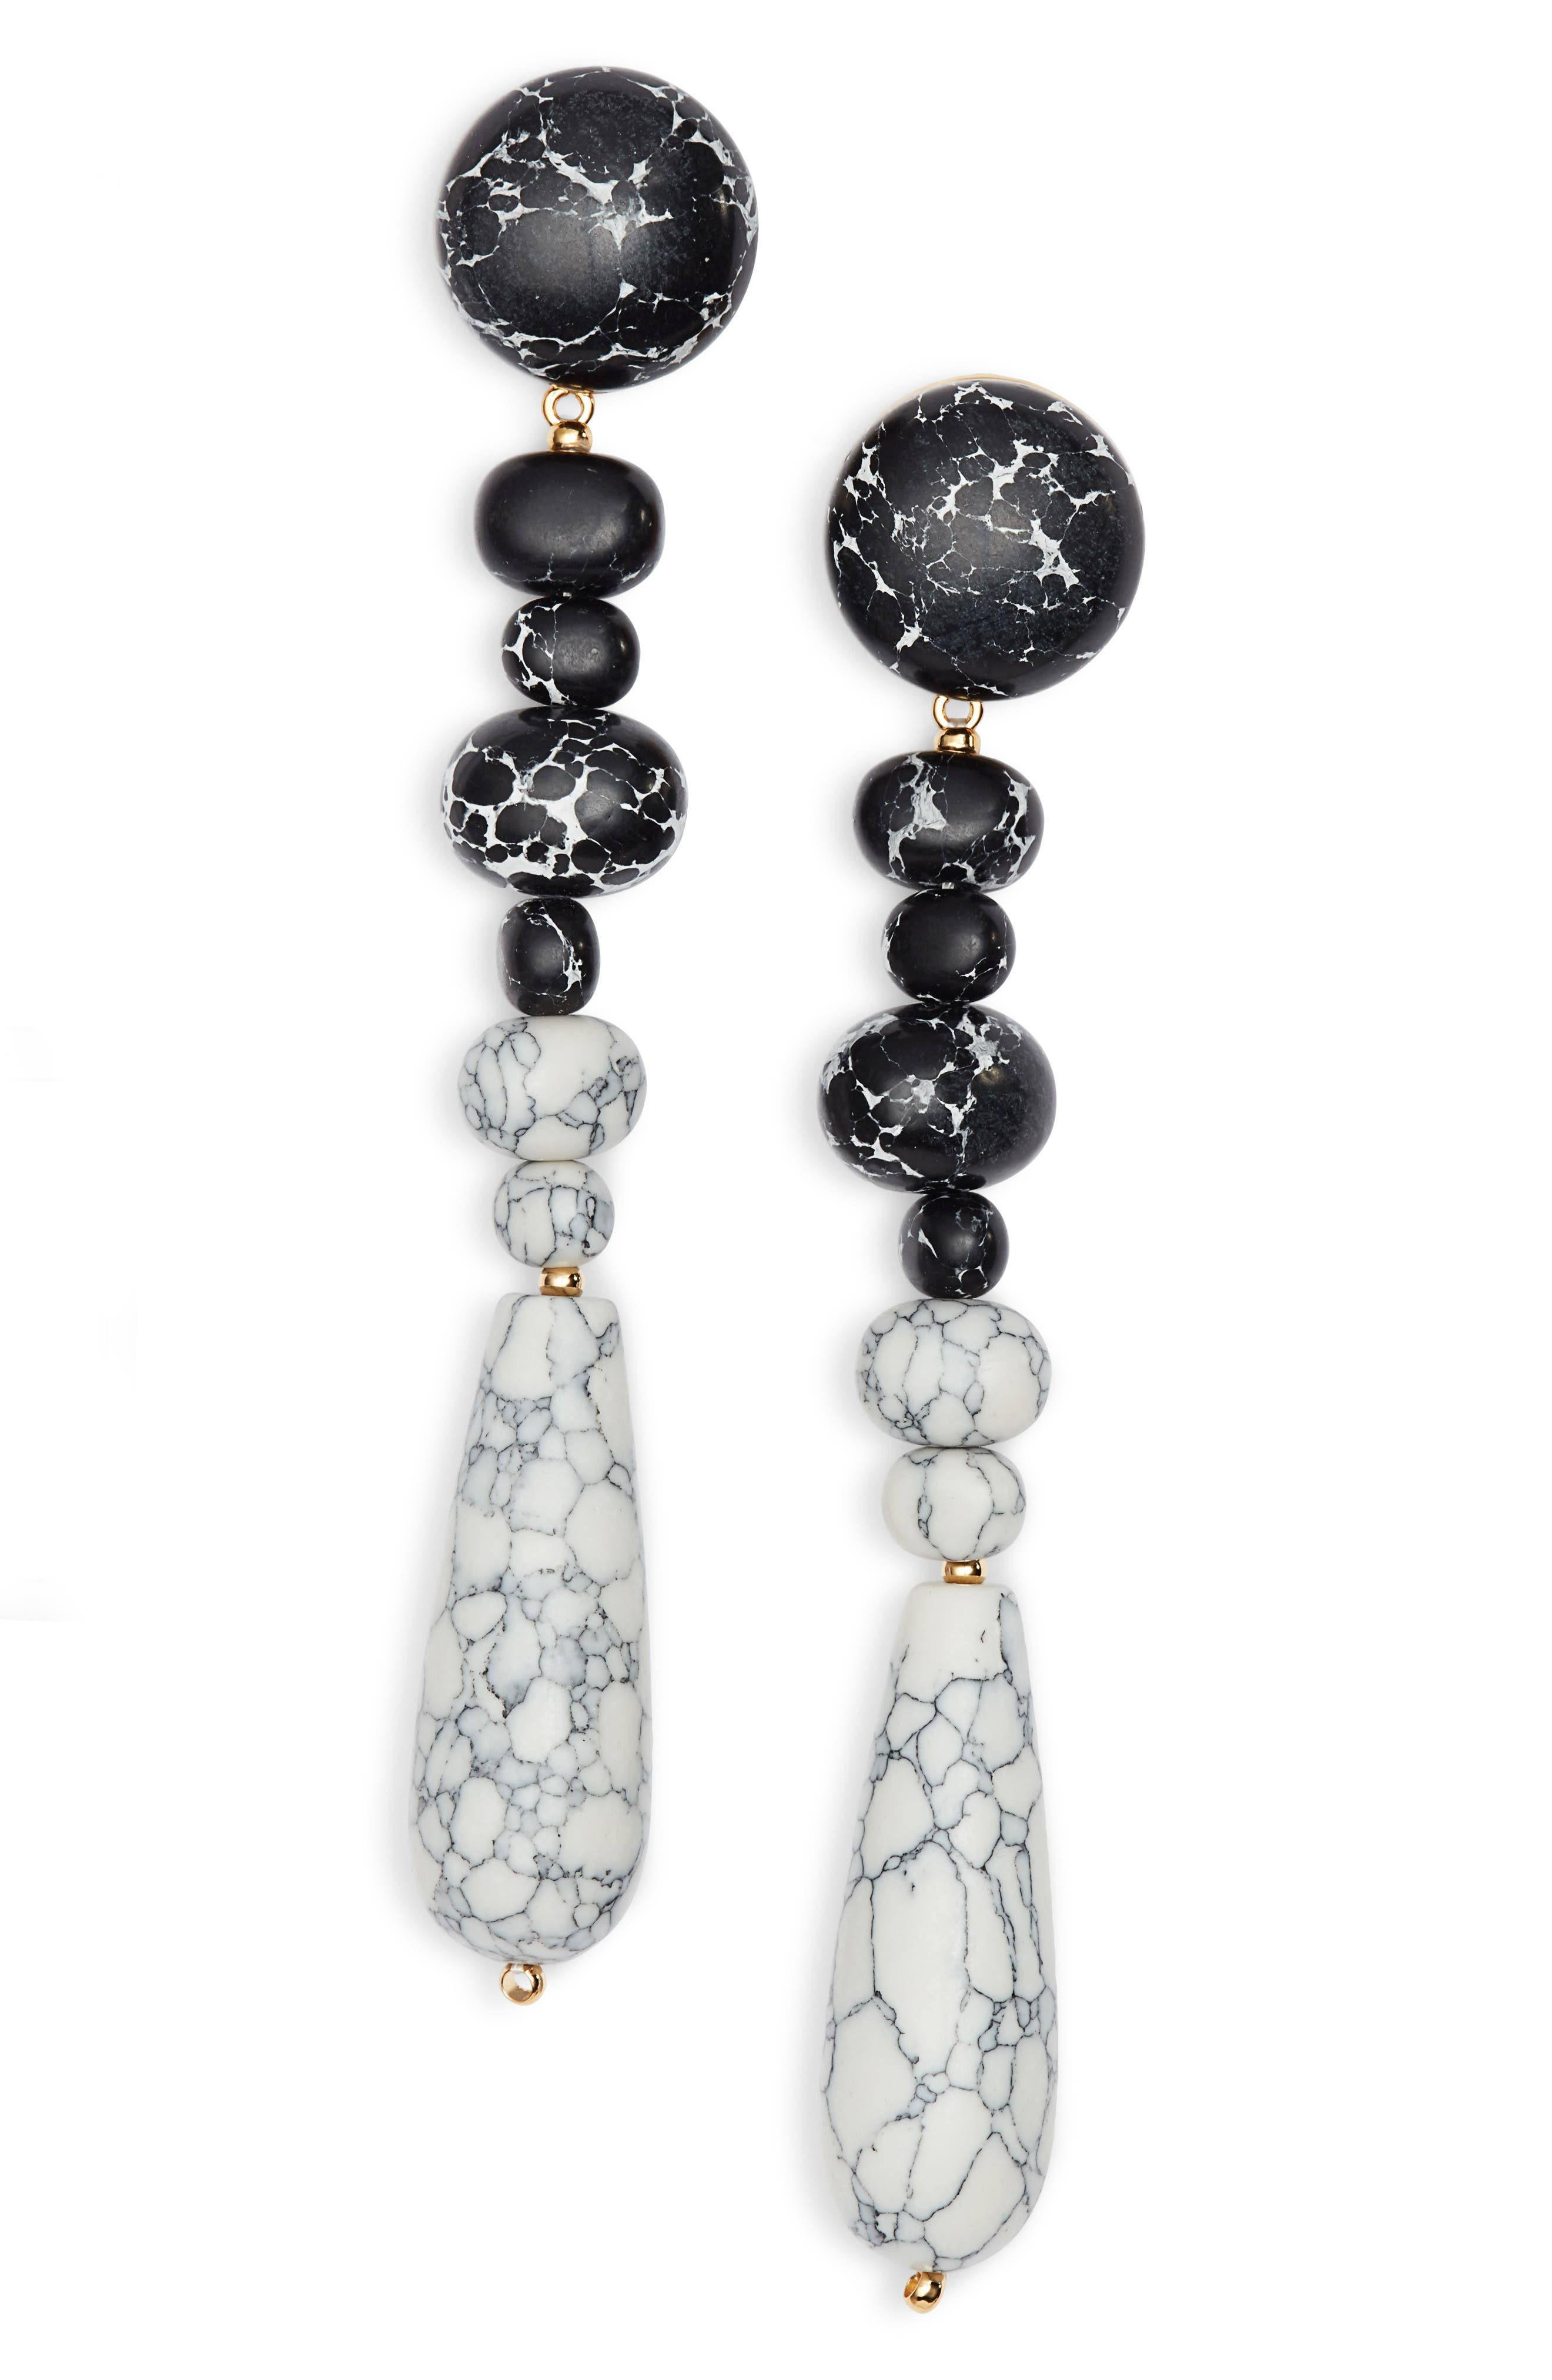 Copacabana Drop Earrings,                         Main,                         color, BLACK AND WHITE